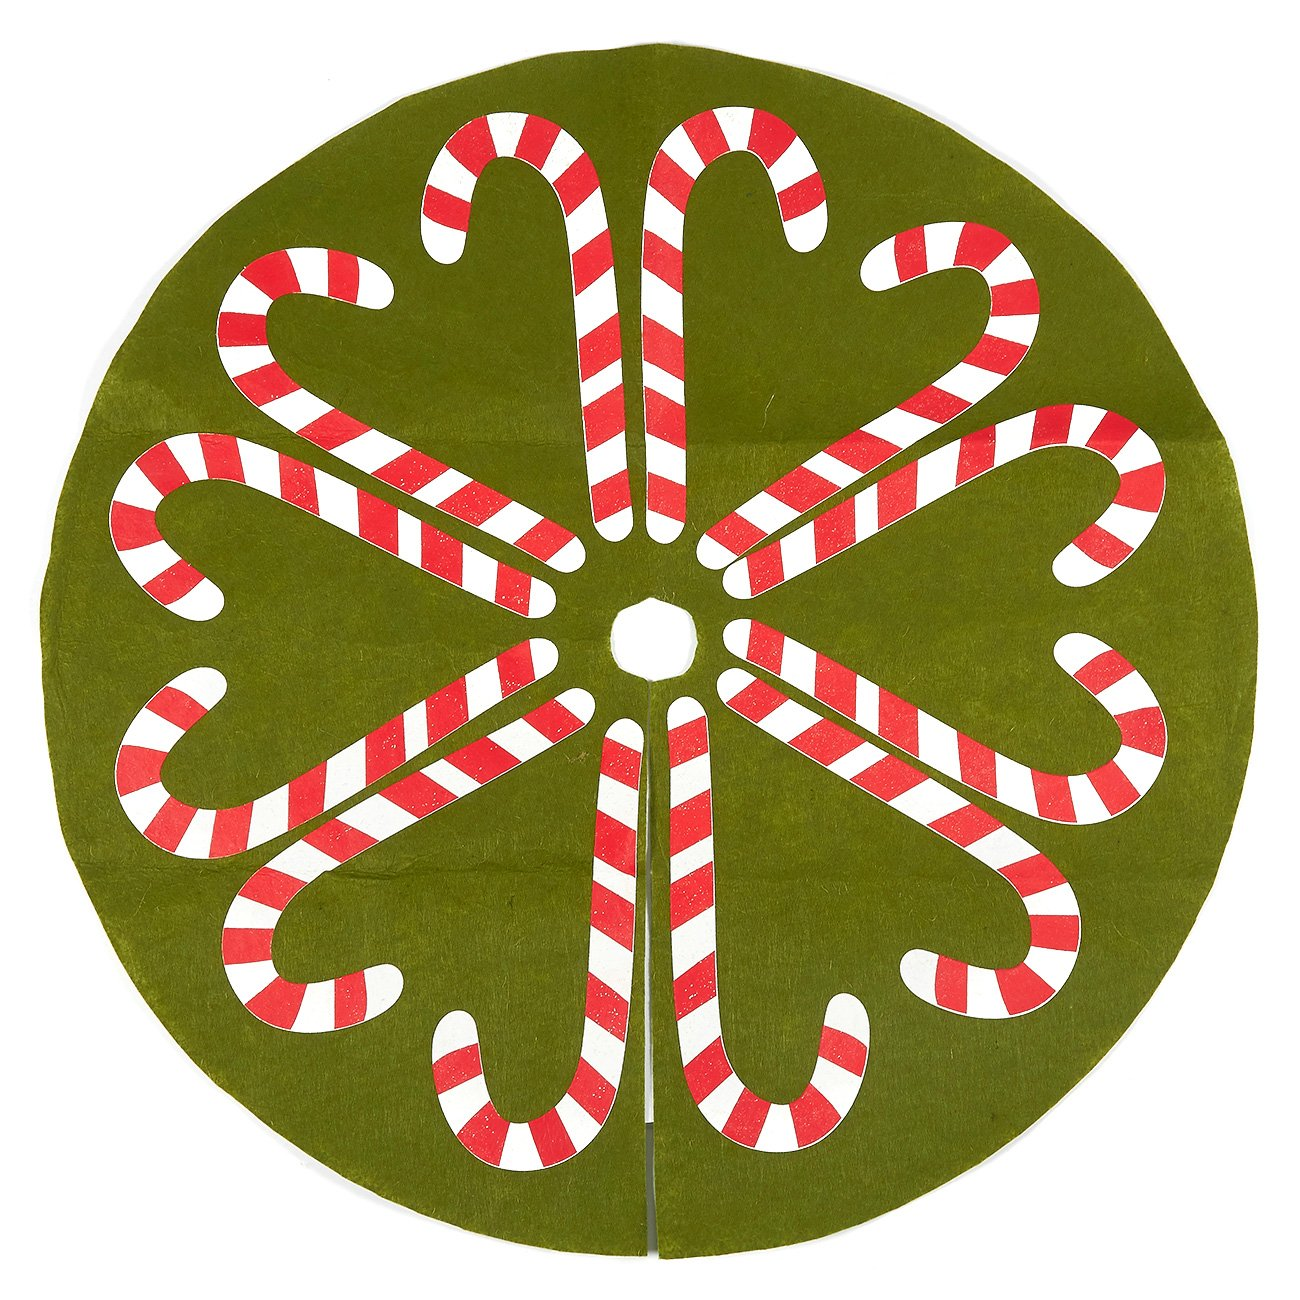 30-Inch Christmas Tree Skirt - Candy Cane-Style Xmas Tree Decoration, Felt Christmas Tree Decor, Green Juvale